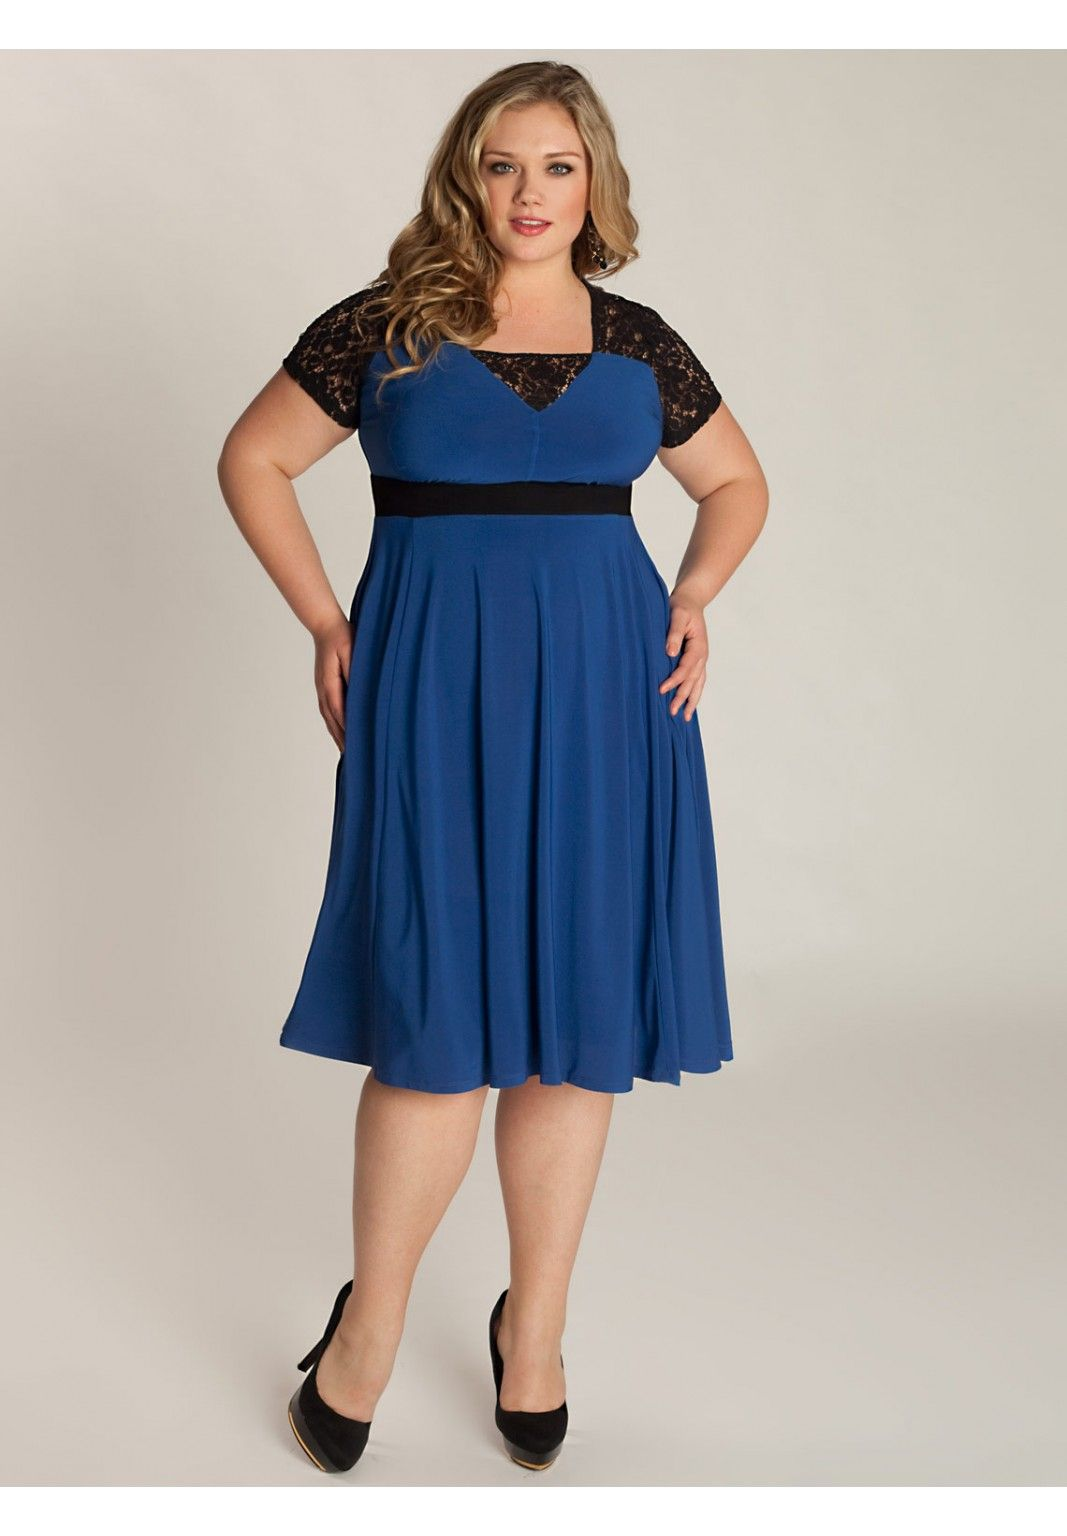 How to dress a fat girl elegantly and tastefully